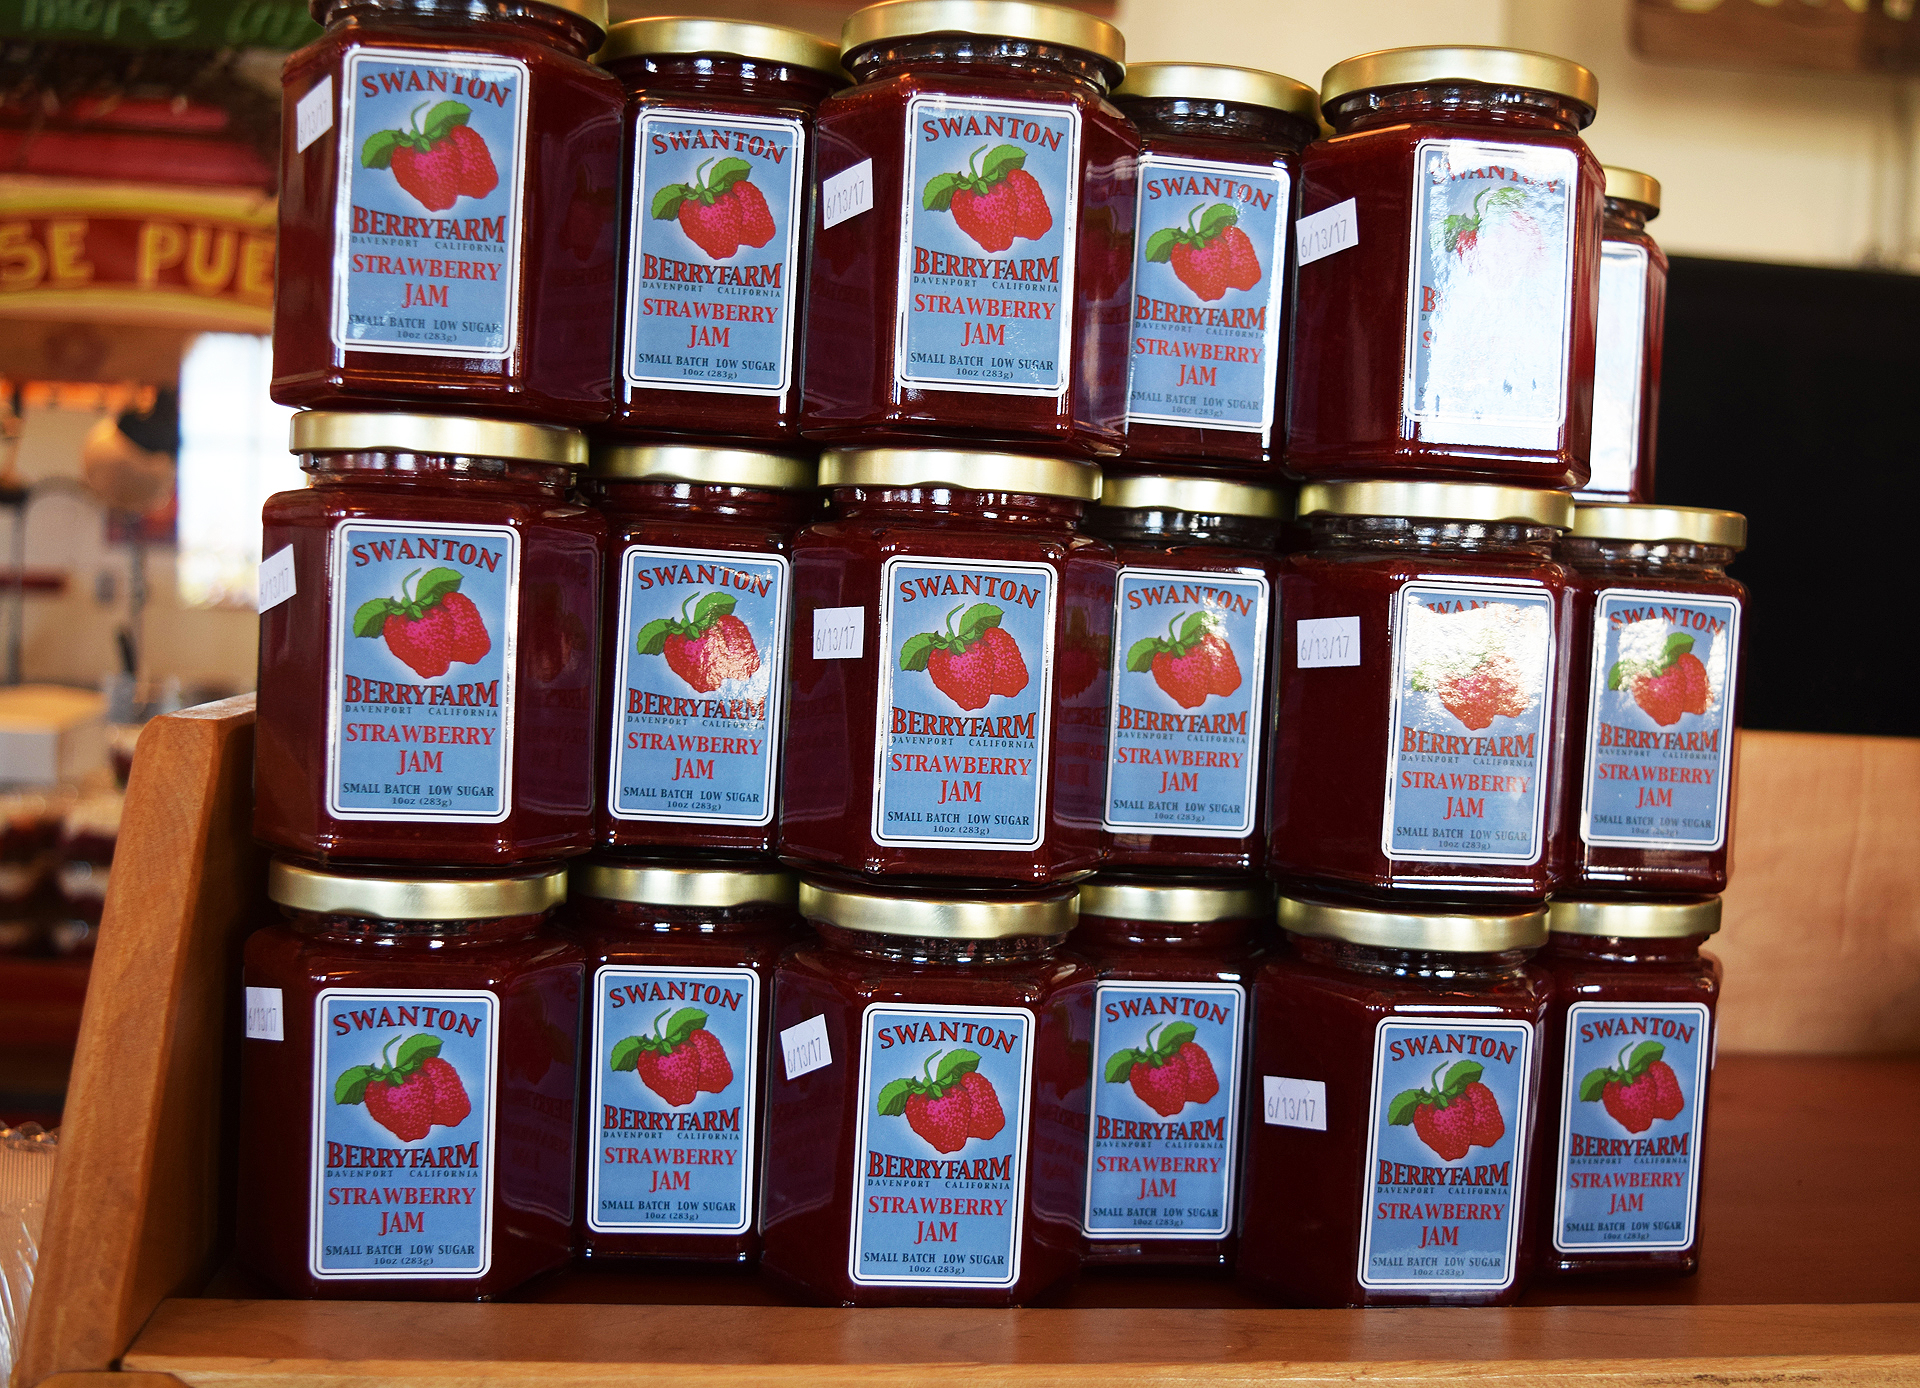 Swanton Berry Farm produces jam made from its fantastic fruit, which is often available at its farmers market stands.